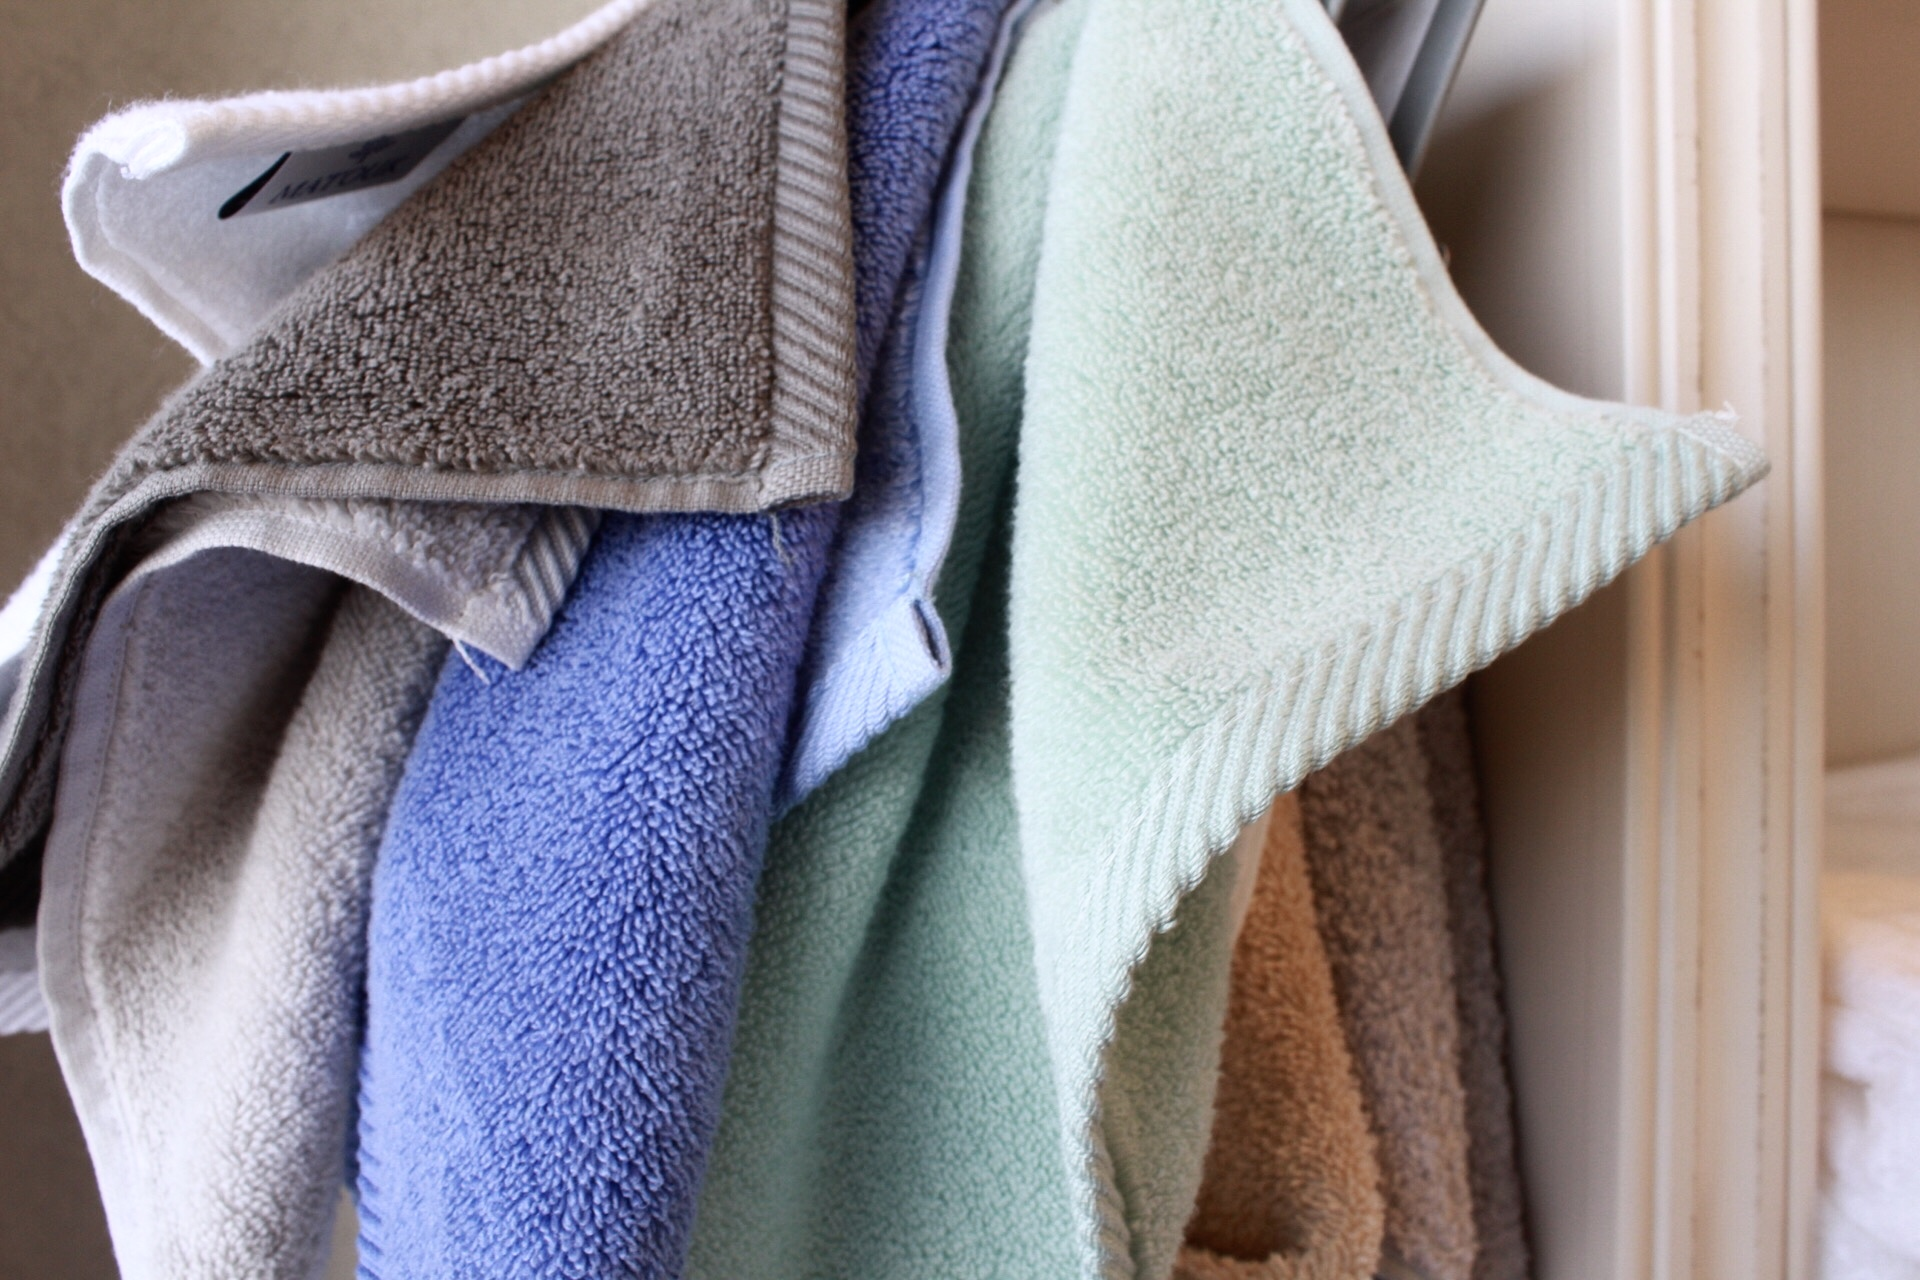 Washcloths are a fun way to add a pop of color.